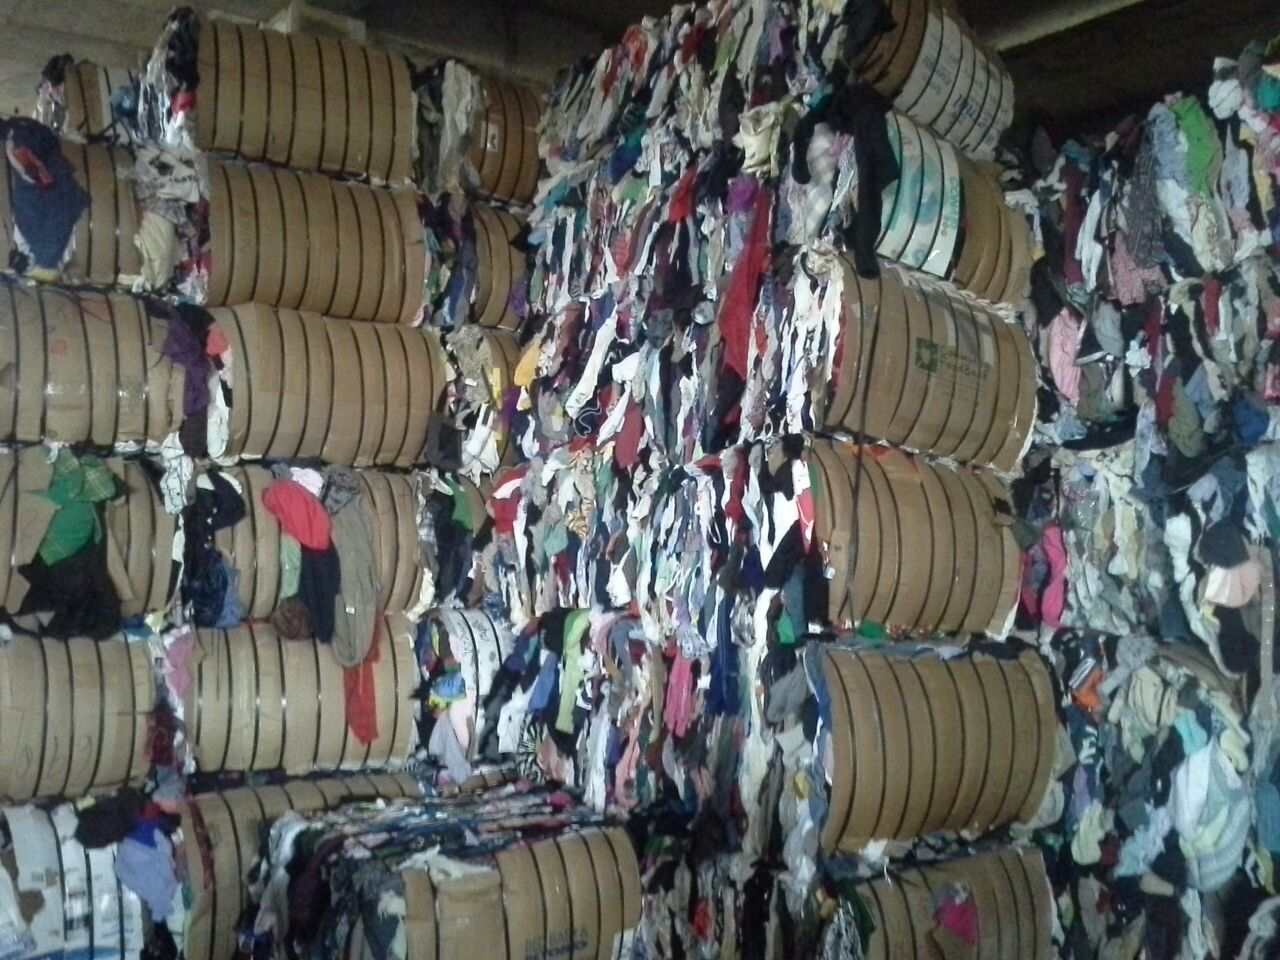 Raw materials - Mixed Rags